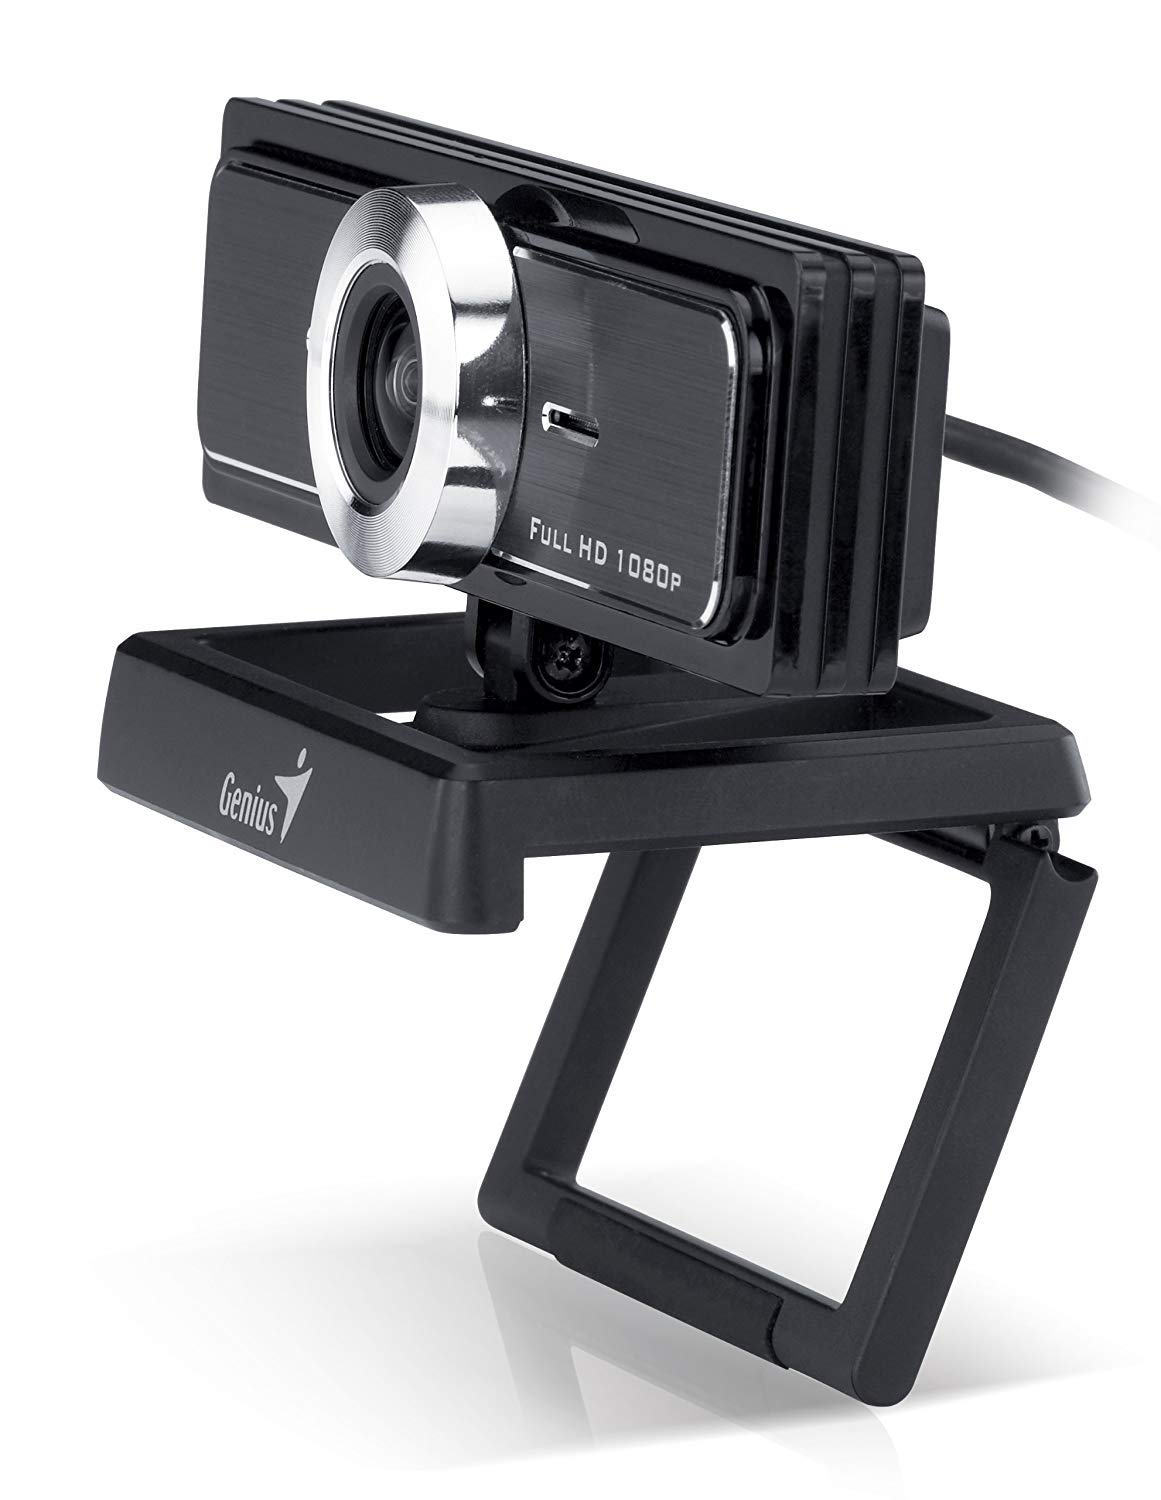 Genius 120-degree Ultra Wide Angle Full HD Conference Webcam(WideCam F100) by Genius